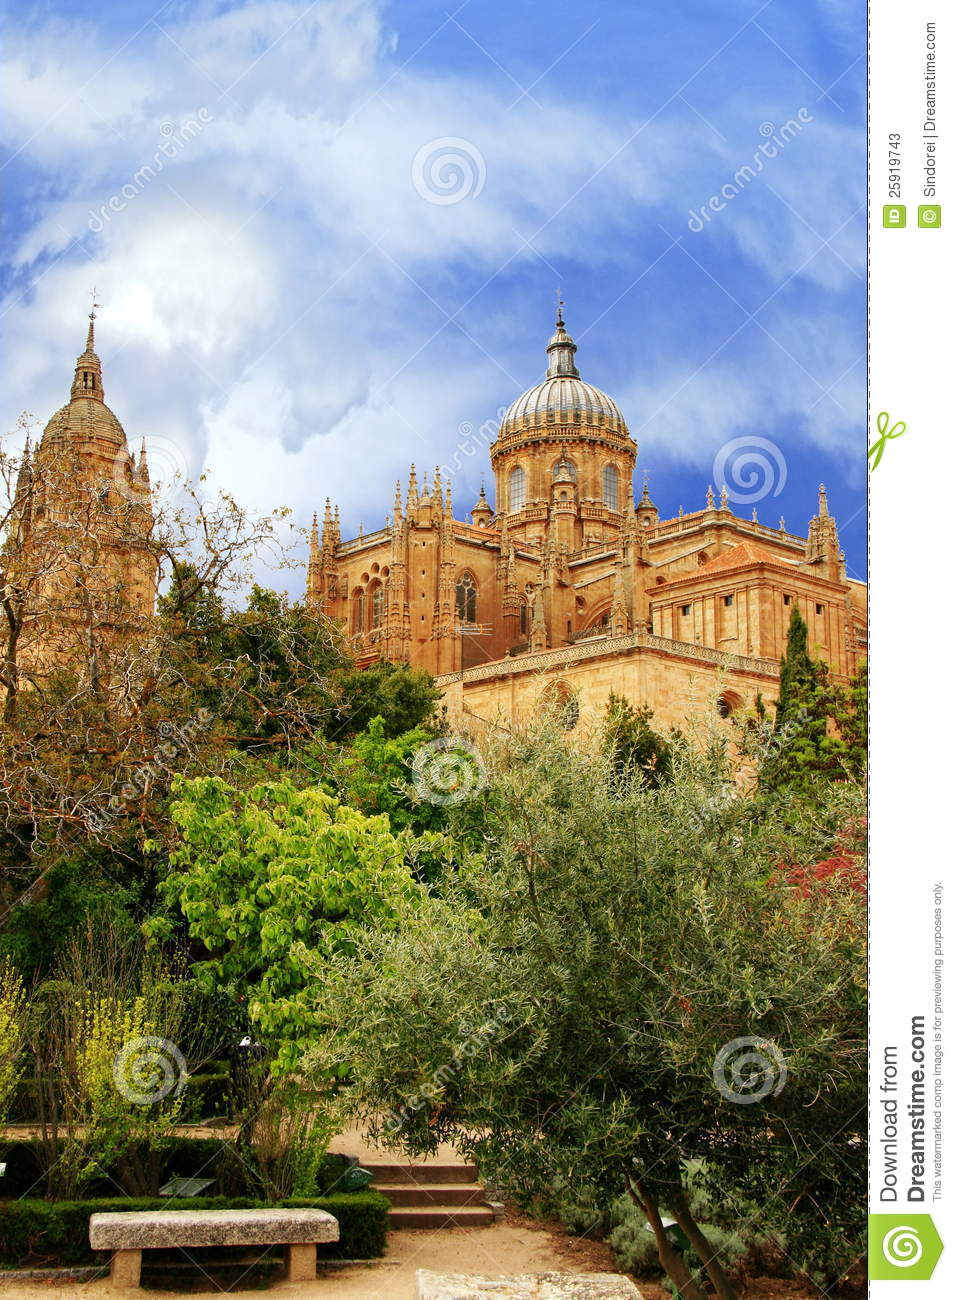 Download Spanish Gardens And Cathedral Stock Image   Image Of  Mediterranean, Church: 25919743